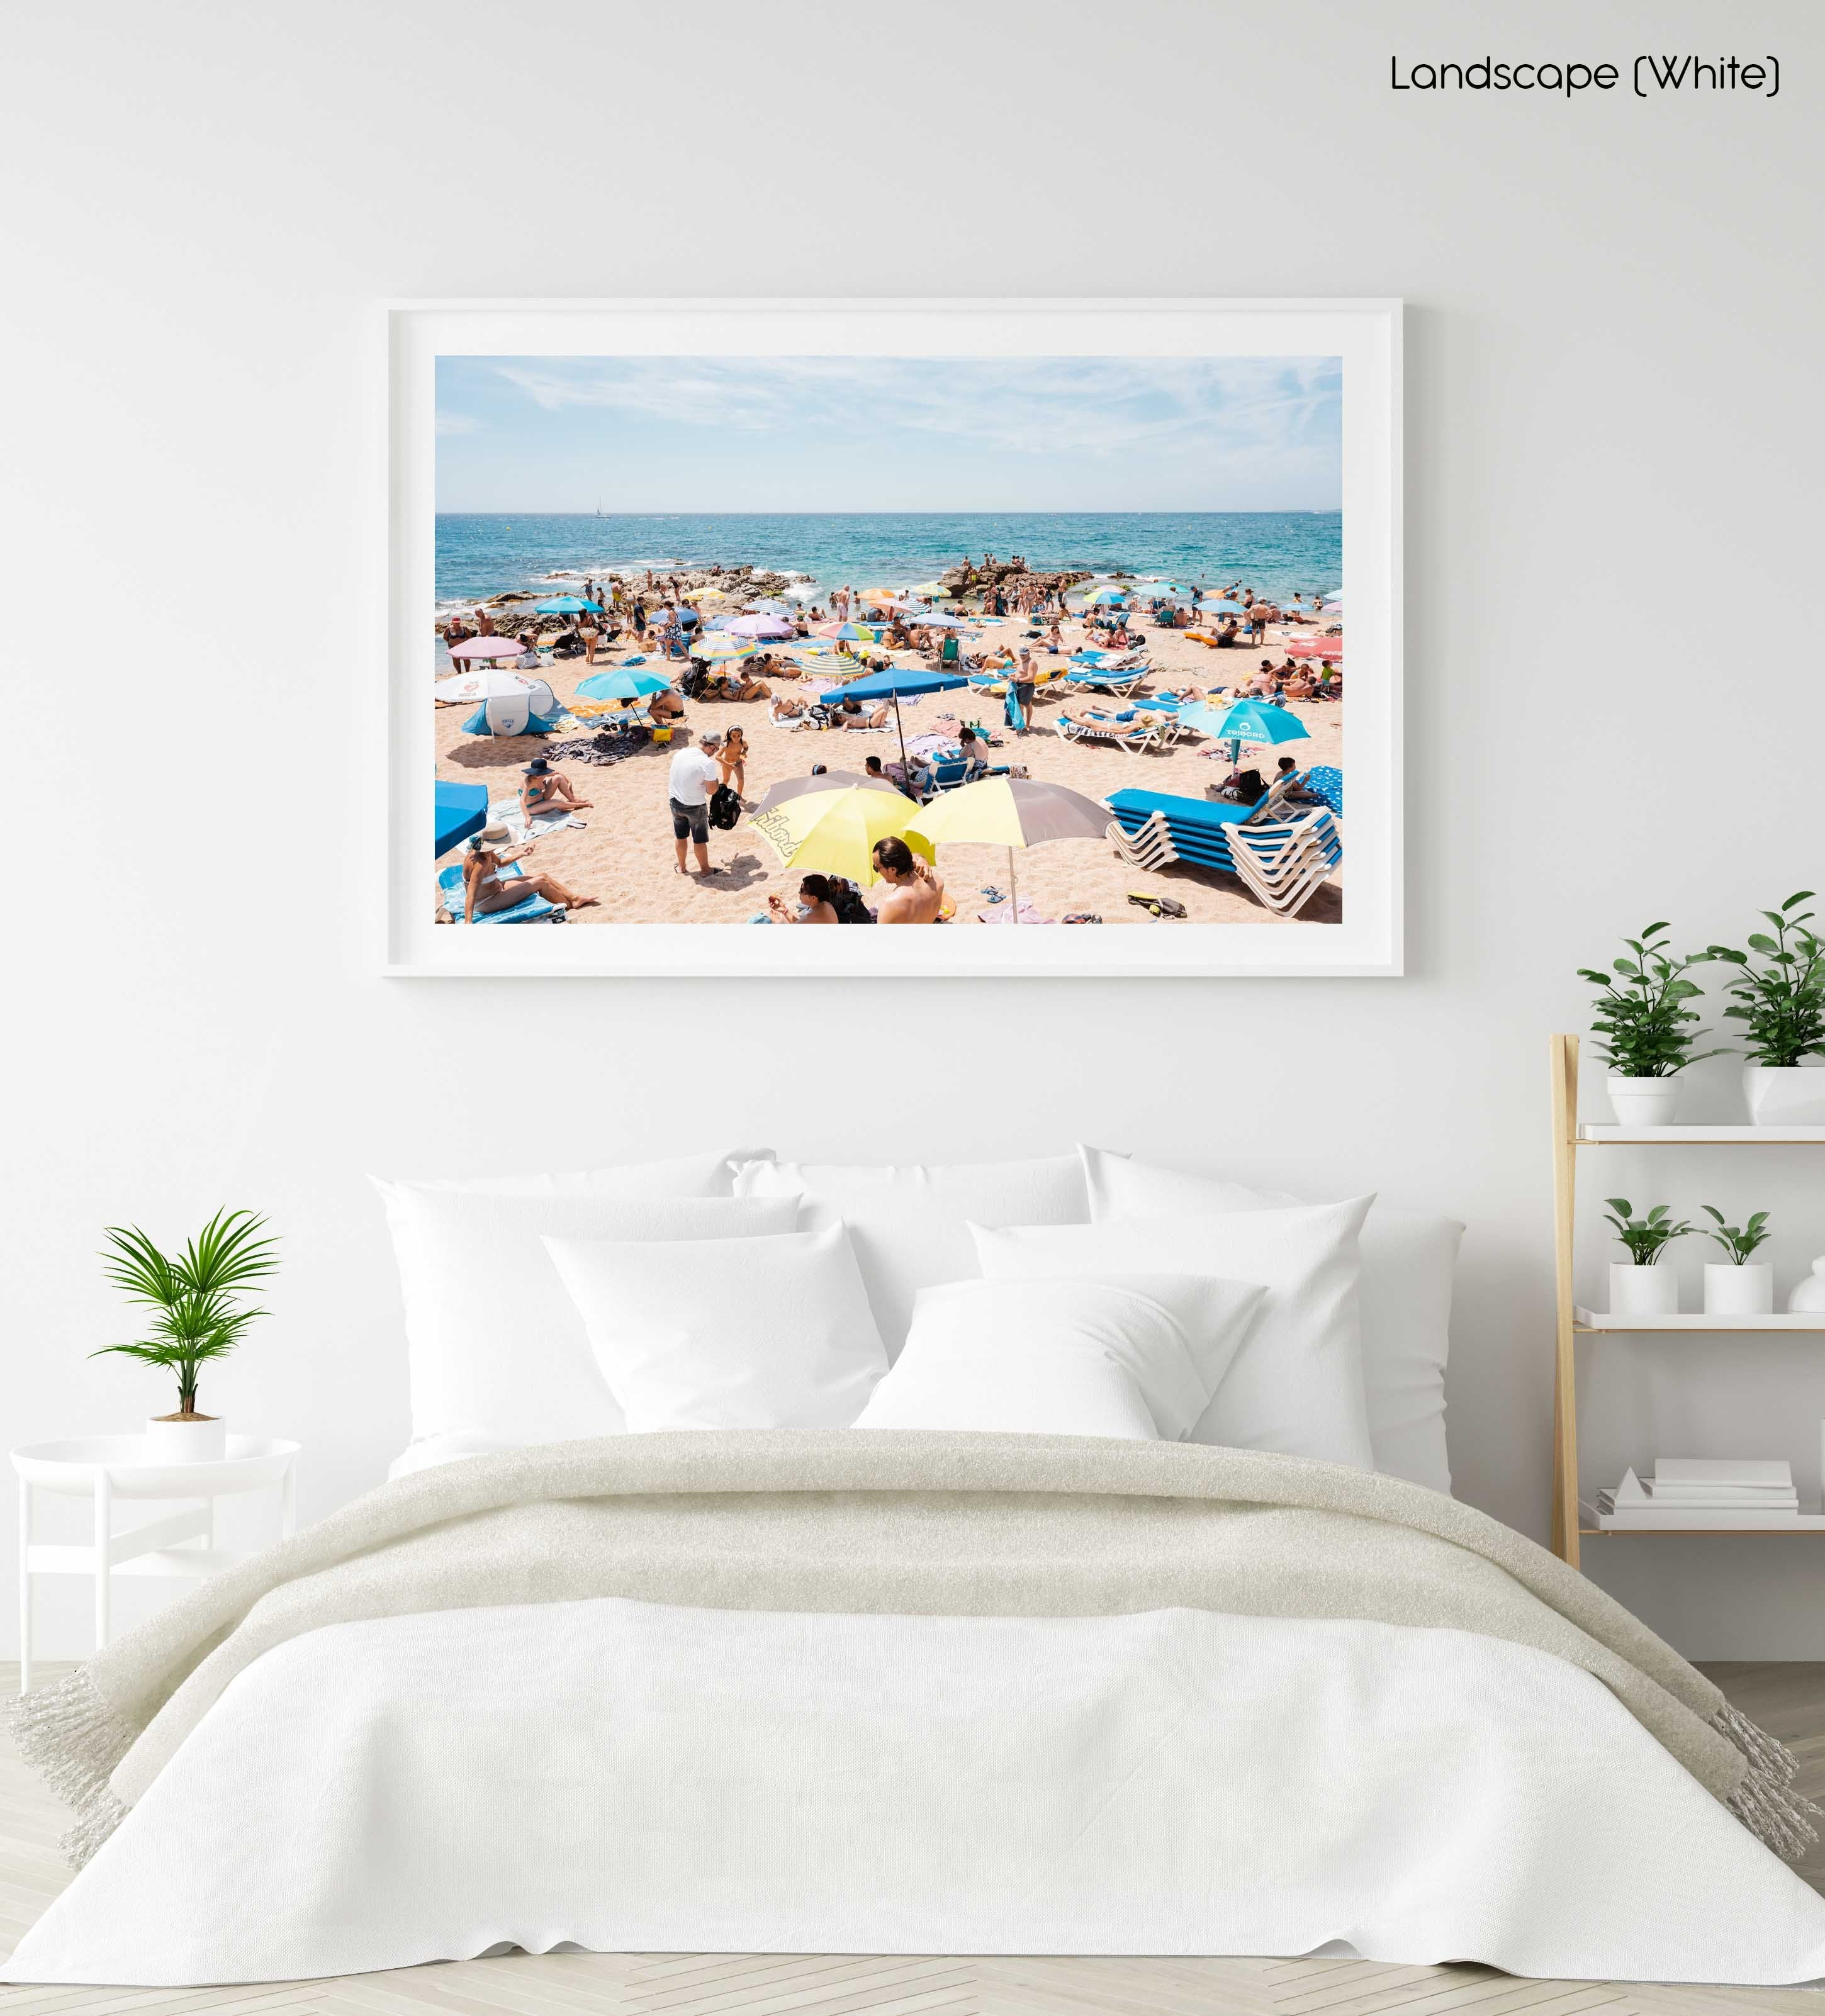 Lloret de Mar beach full of people and umbrellas in a white fine art frame